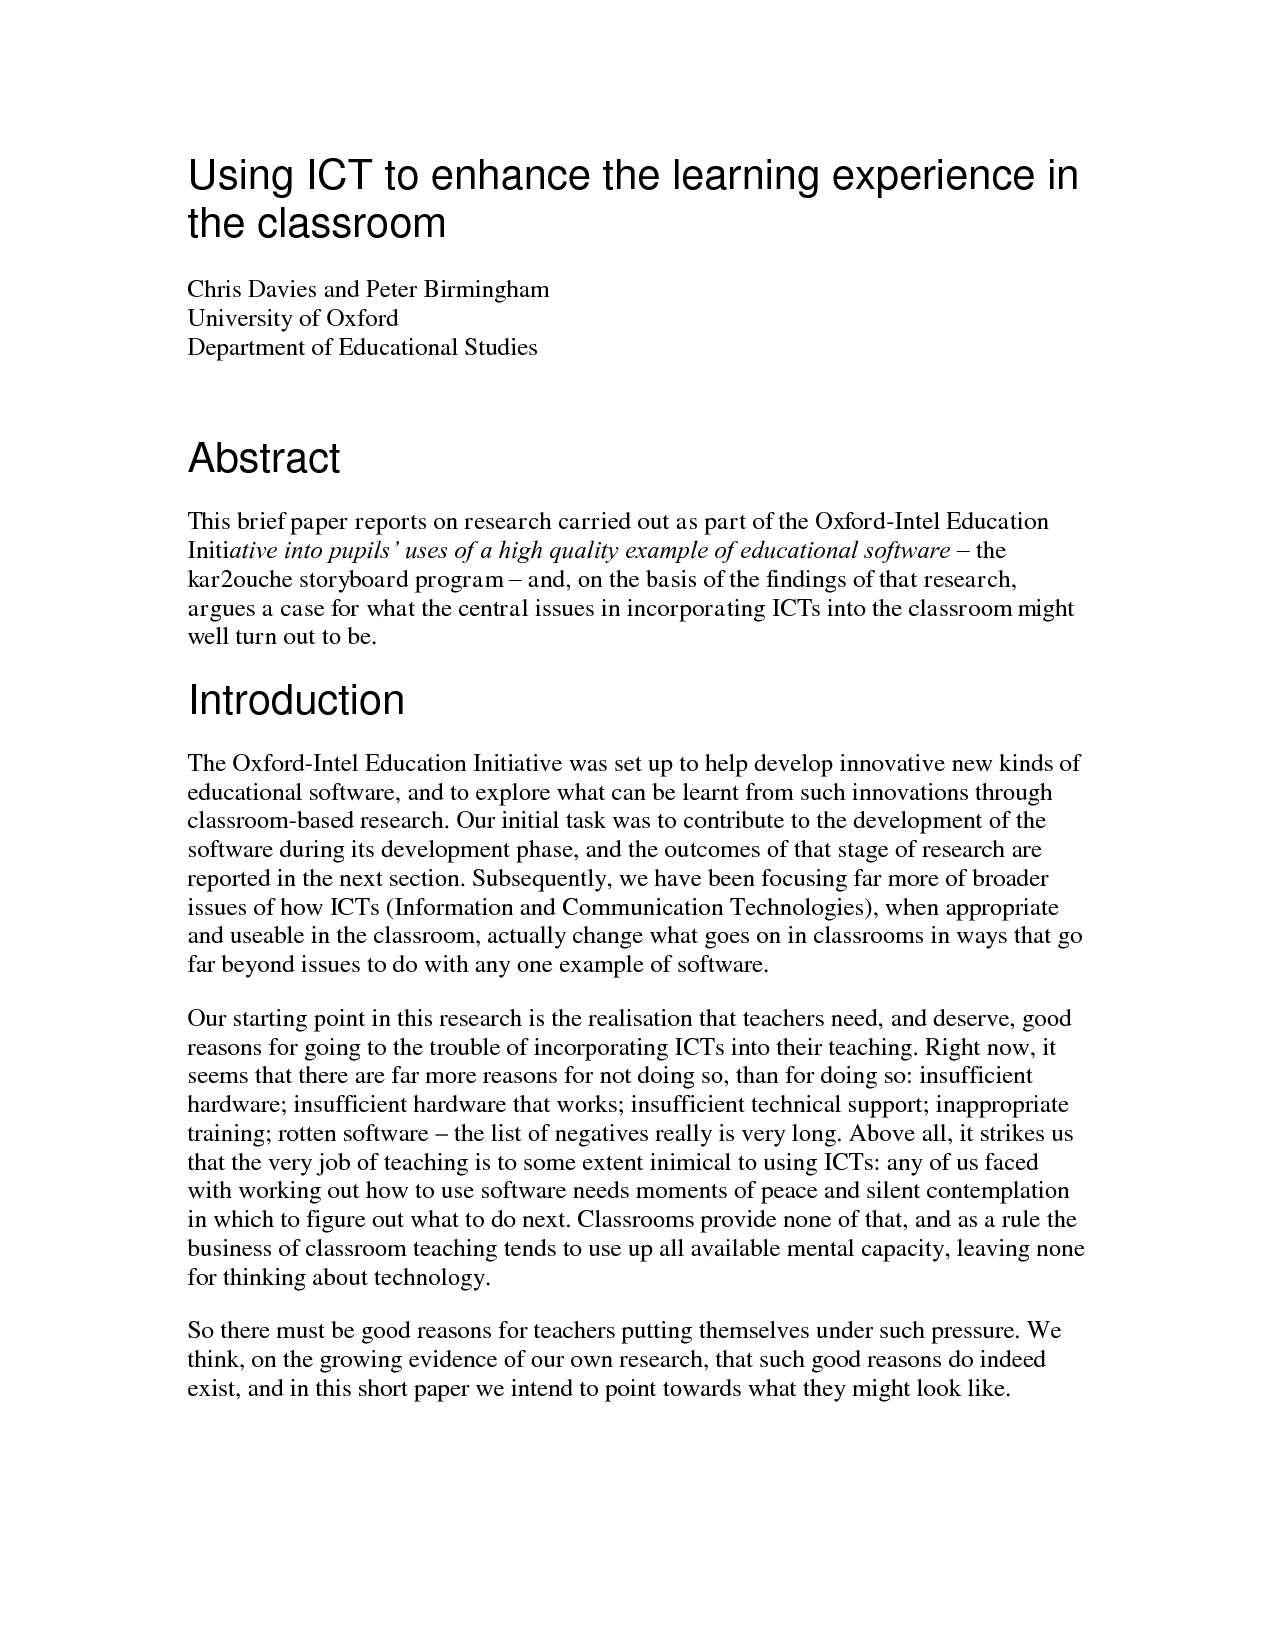 Essays On Science And Technology  Romeo And Juliet English Essay also Example Of Proposal Essay Abstract Essay Example  Tosyamagdaleneprojectorg Narrative Essays Examples For High School